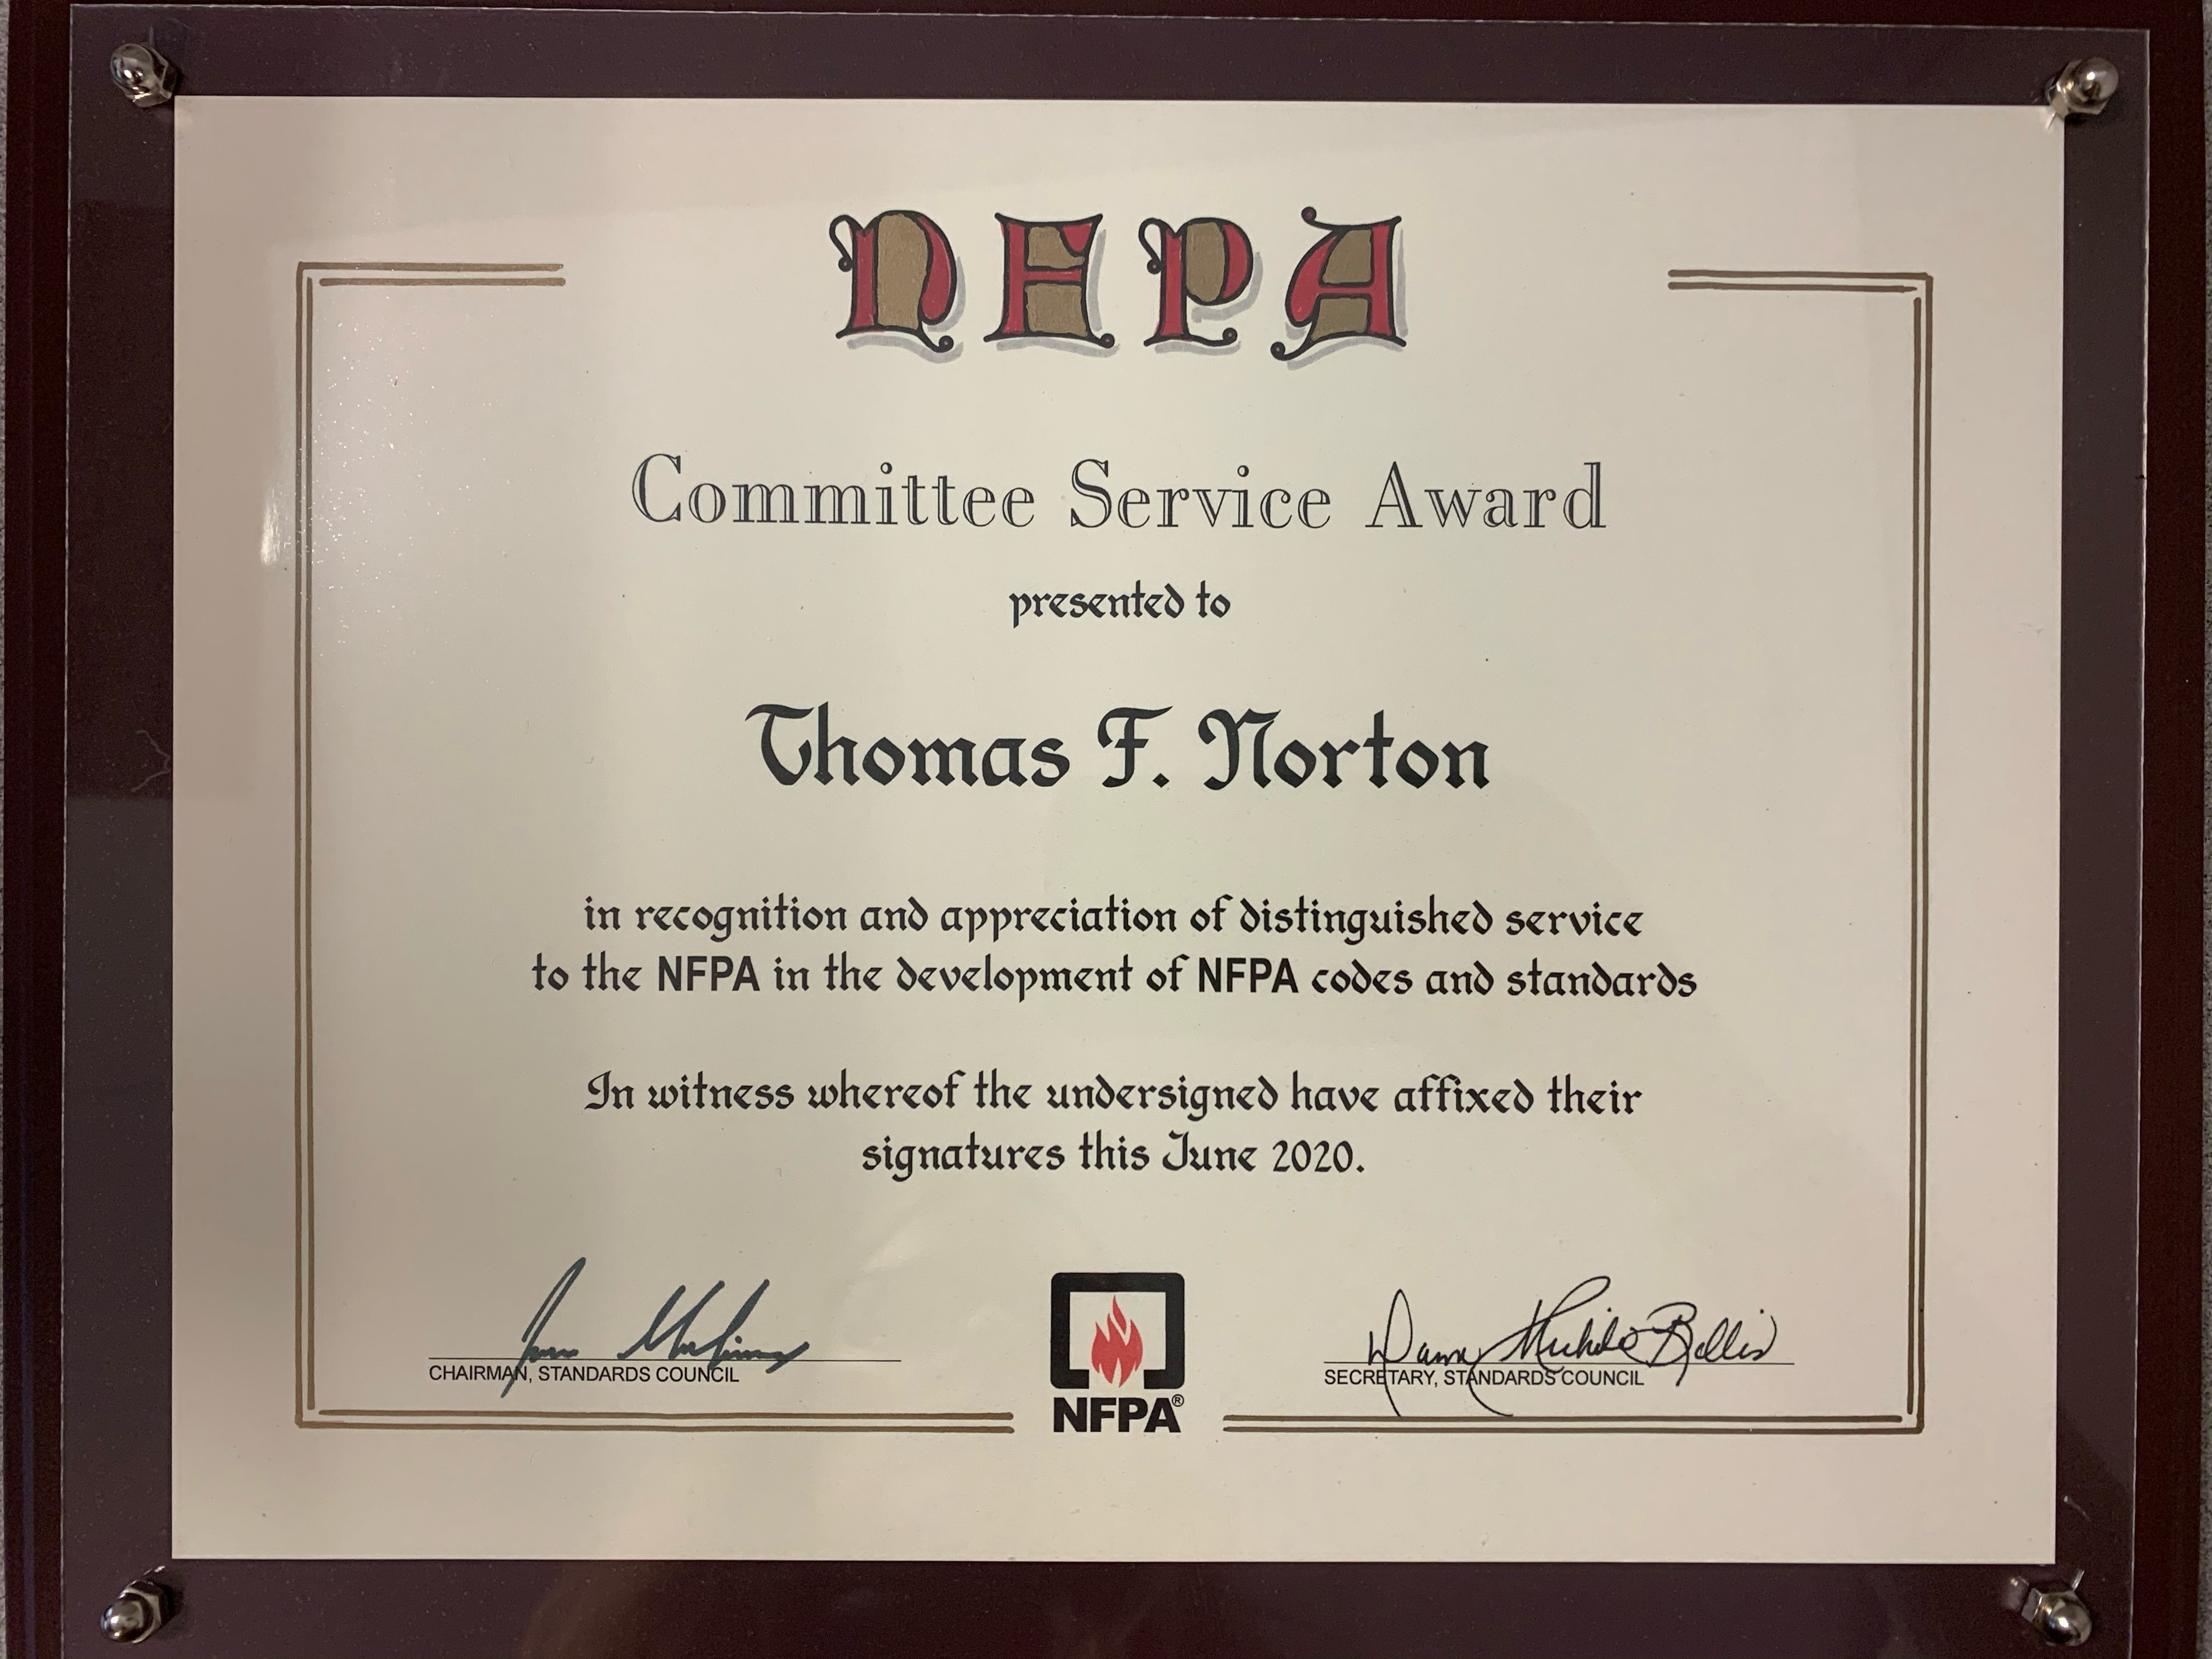 NFPA Committee Service Award